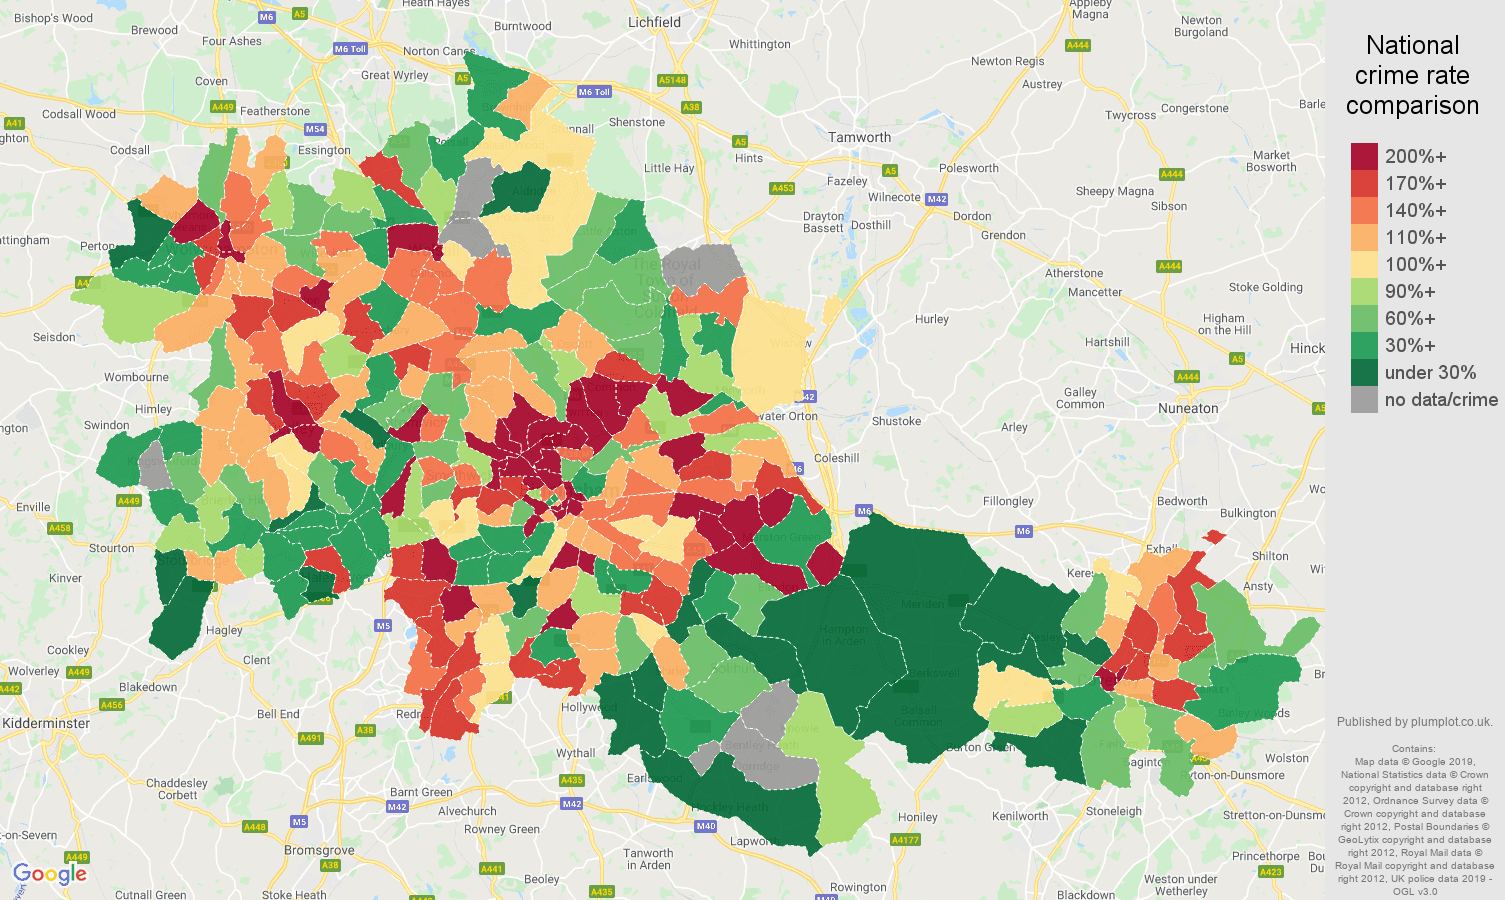 West Midlands county possession of weapons crime rate comparison map